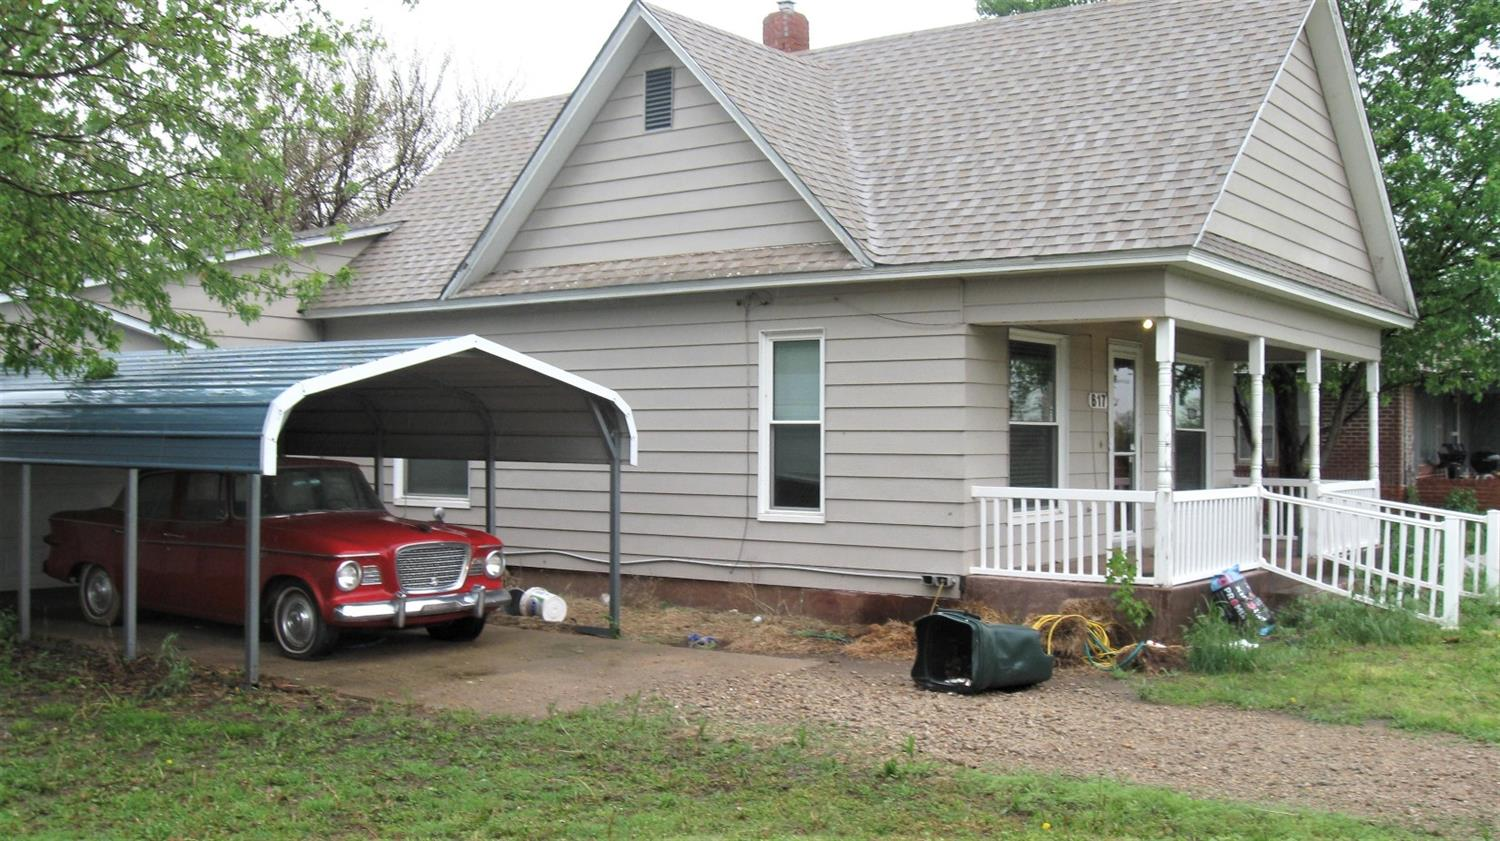 Nice property with 2 bedrooms & 1 bathroom. Many updates done, CH/CA 2016, New windows, Updated bathroom, New kitchen with beautiful hickory cabinets & tile floor. Plus 4 carports. Vacant lot at 617 Cunnife Ave goes along with 621 85' x 140', Demolished house is buried on the 617 property. Property selling AS IS.